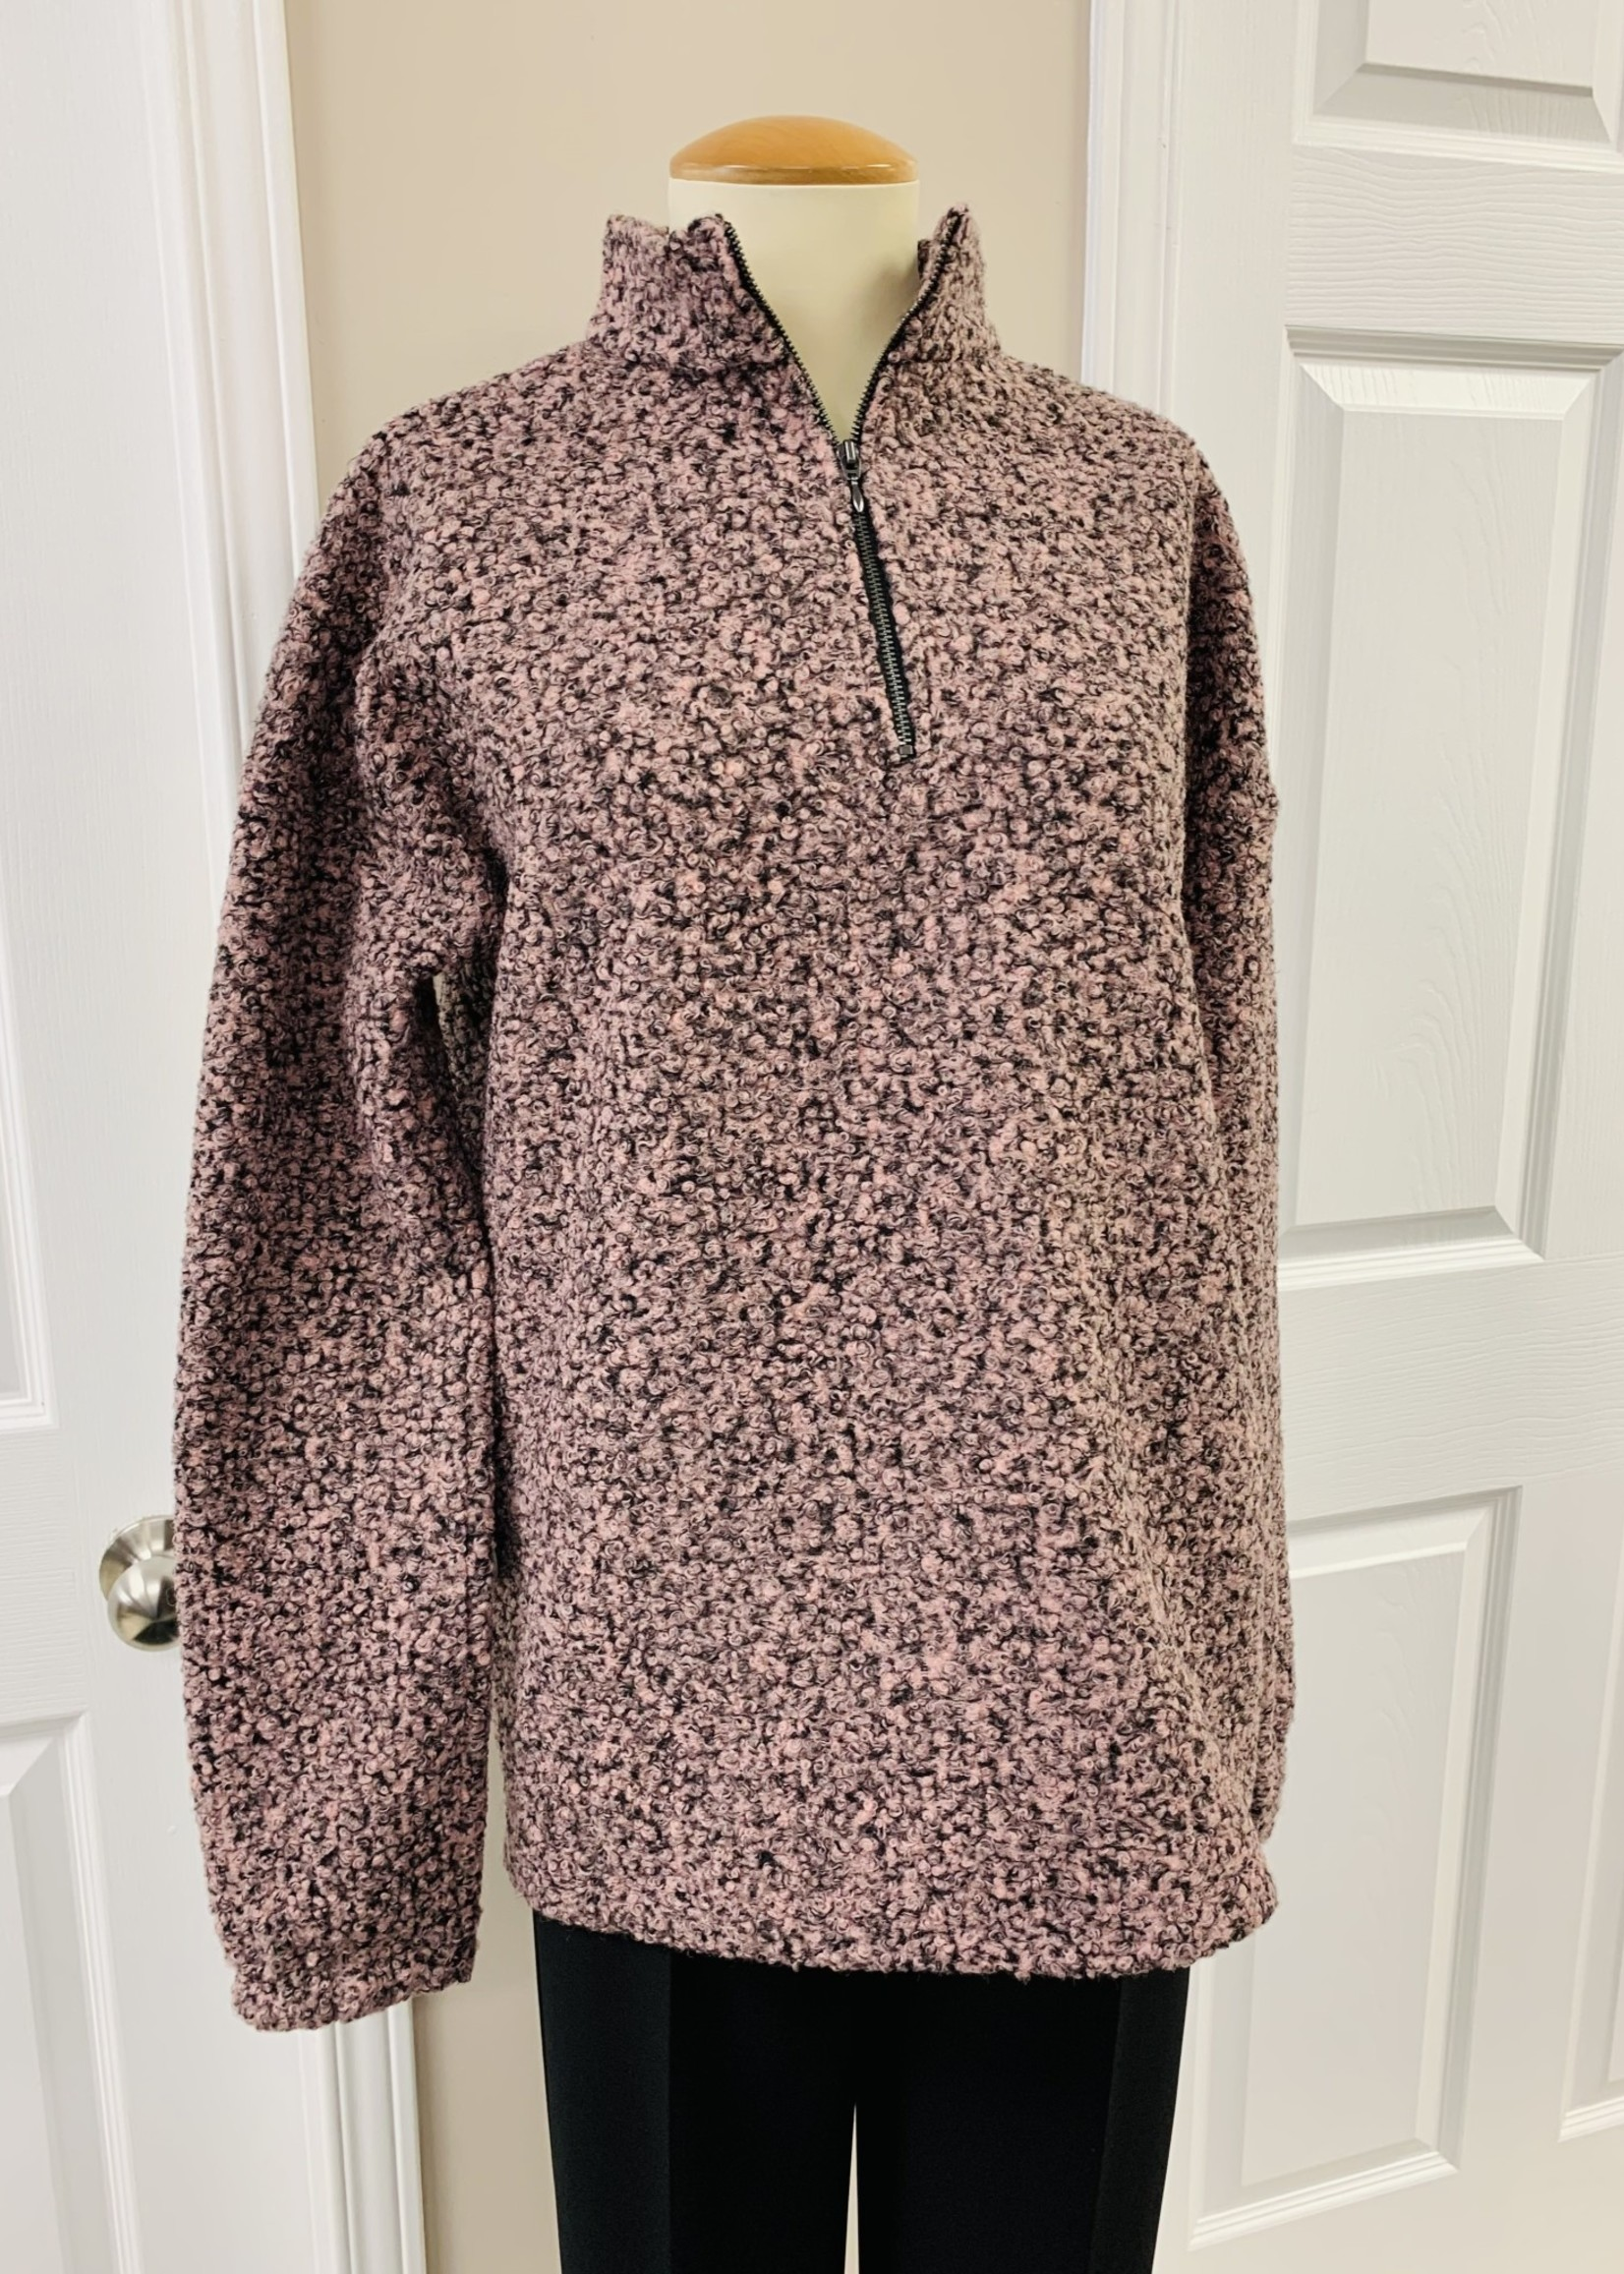 ISCA ISCA Pink and Brown Boucle Knit Half Zipper Top